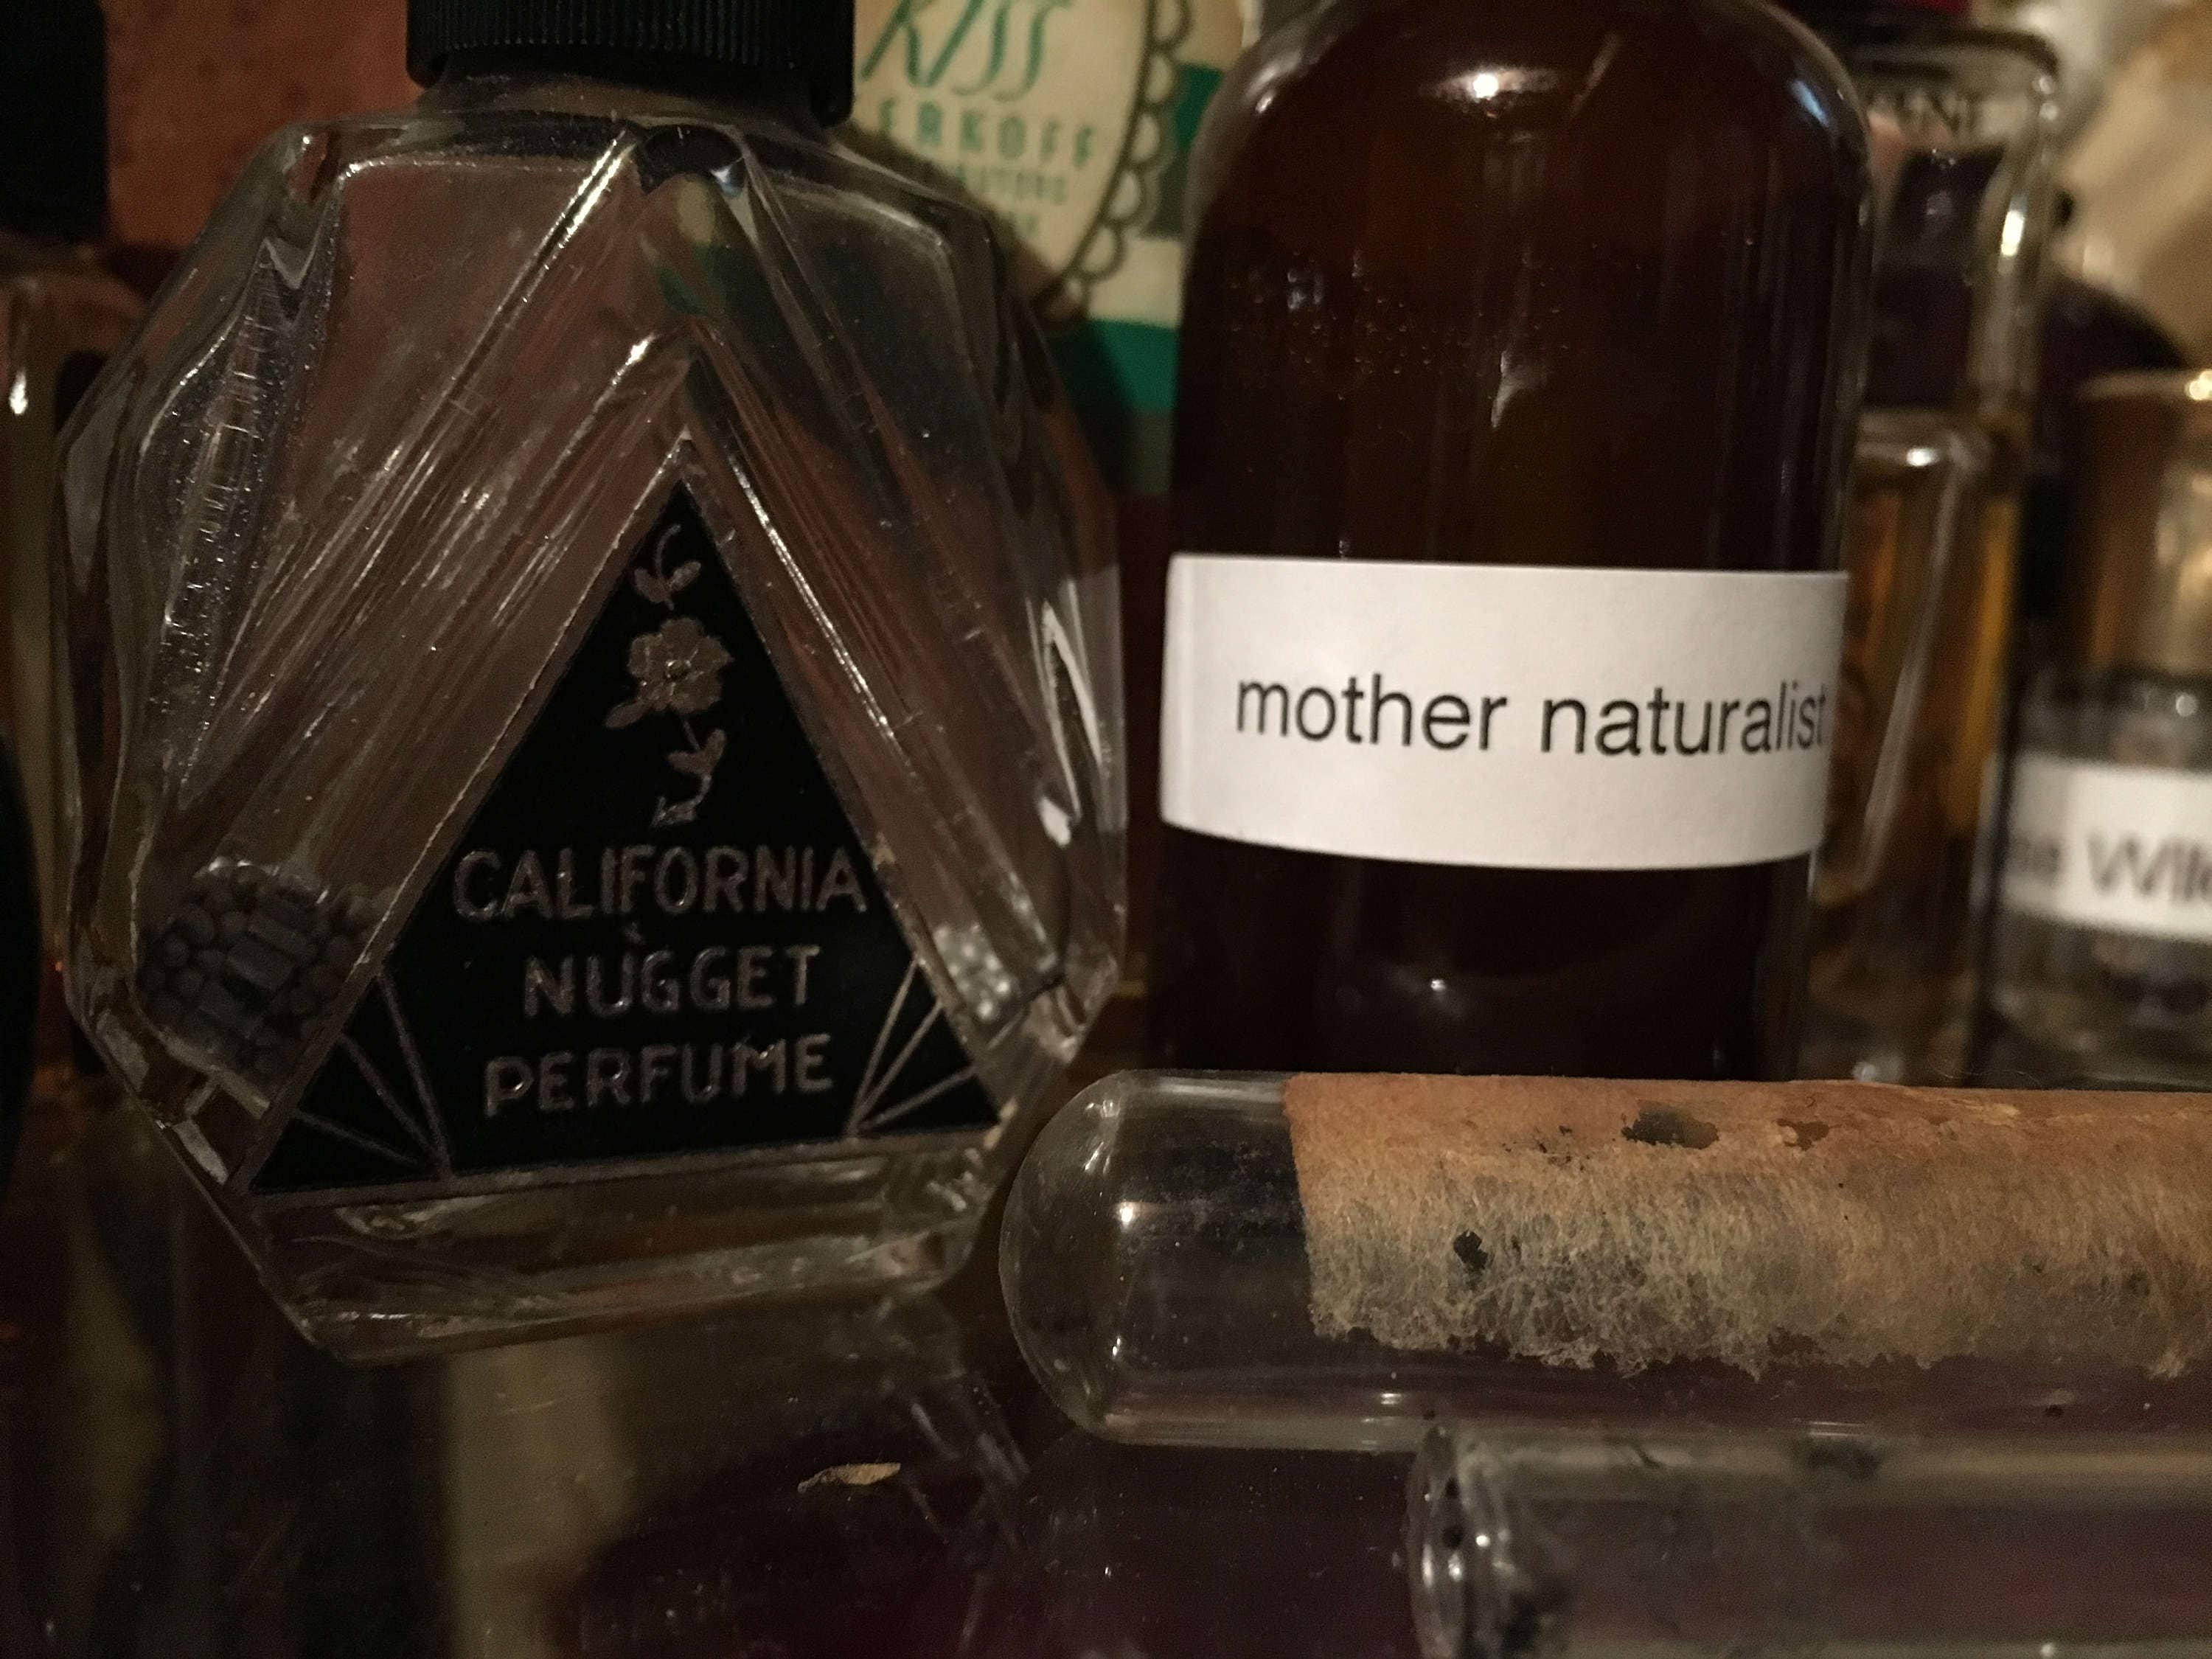 mother naturalist perfume + unisex + natural witch hazel base + powdery spring floral with honeysuckle